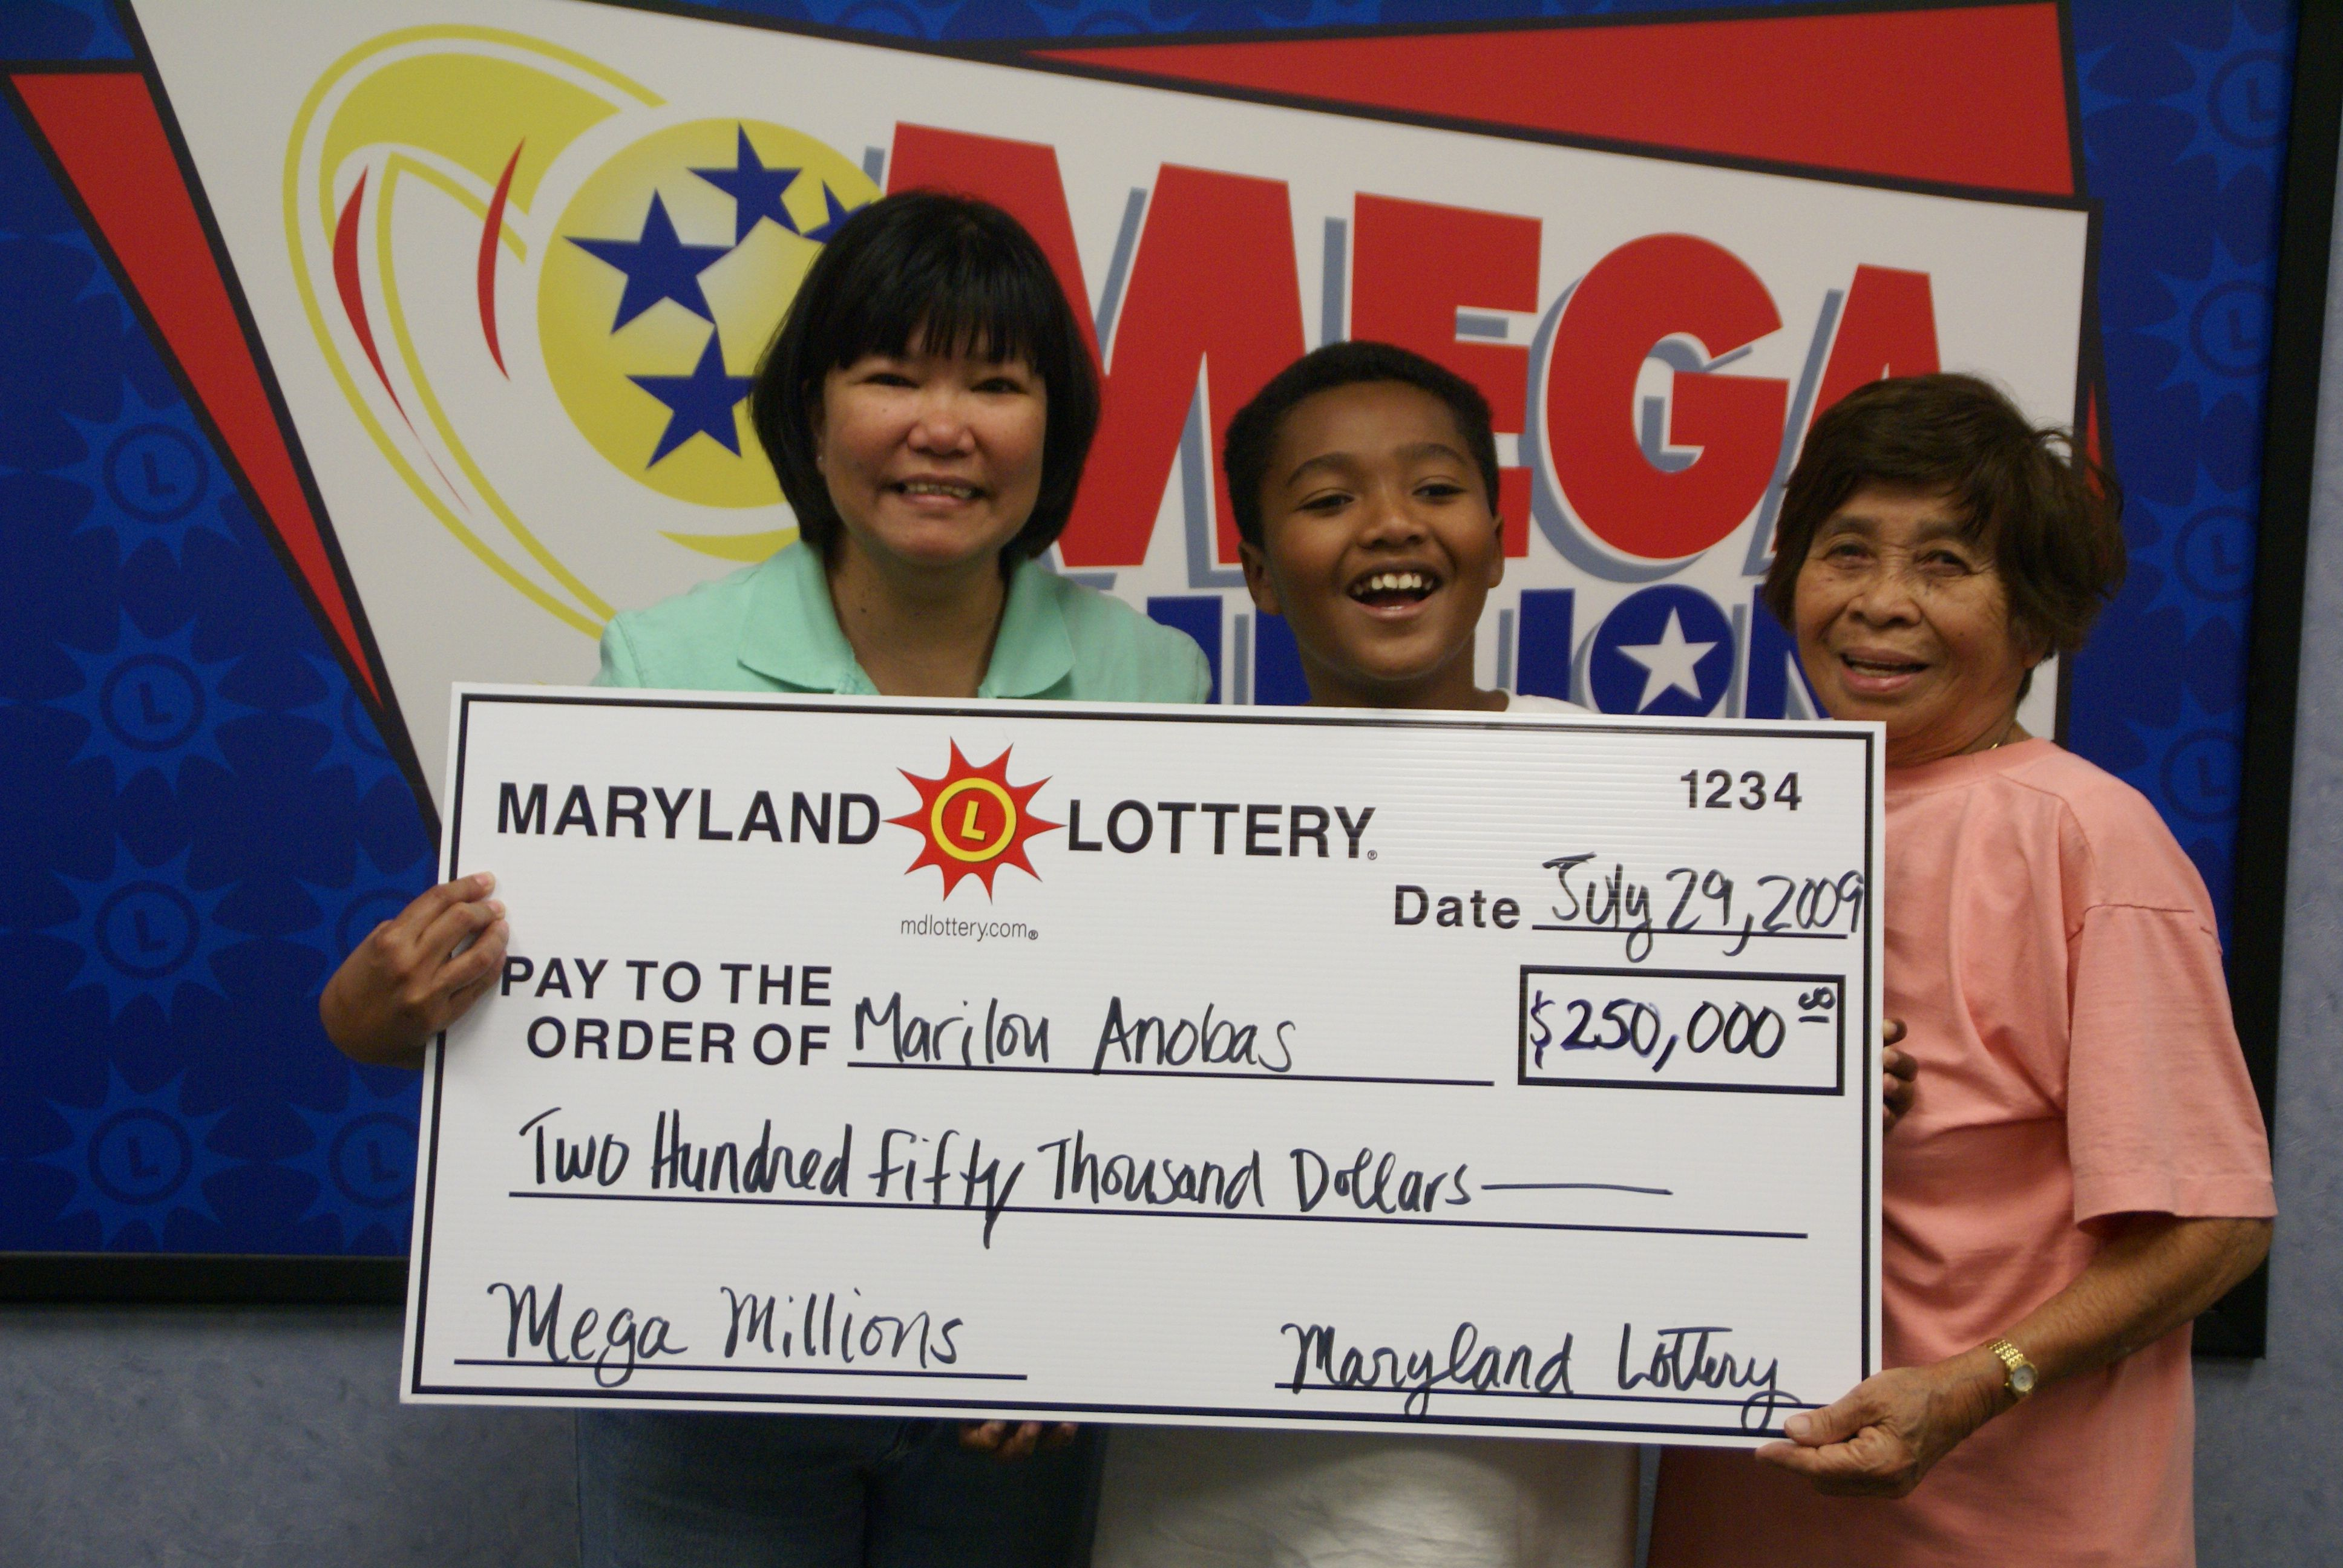 lay to win big when you buy Mega Millions online with    | Mega